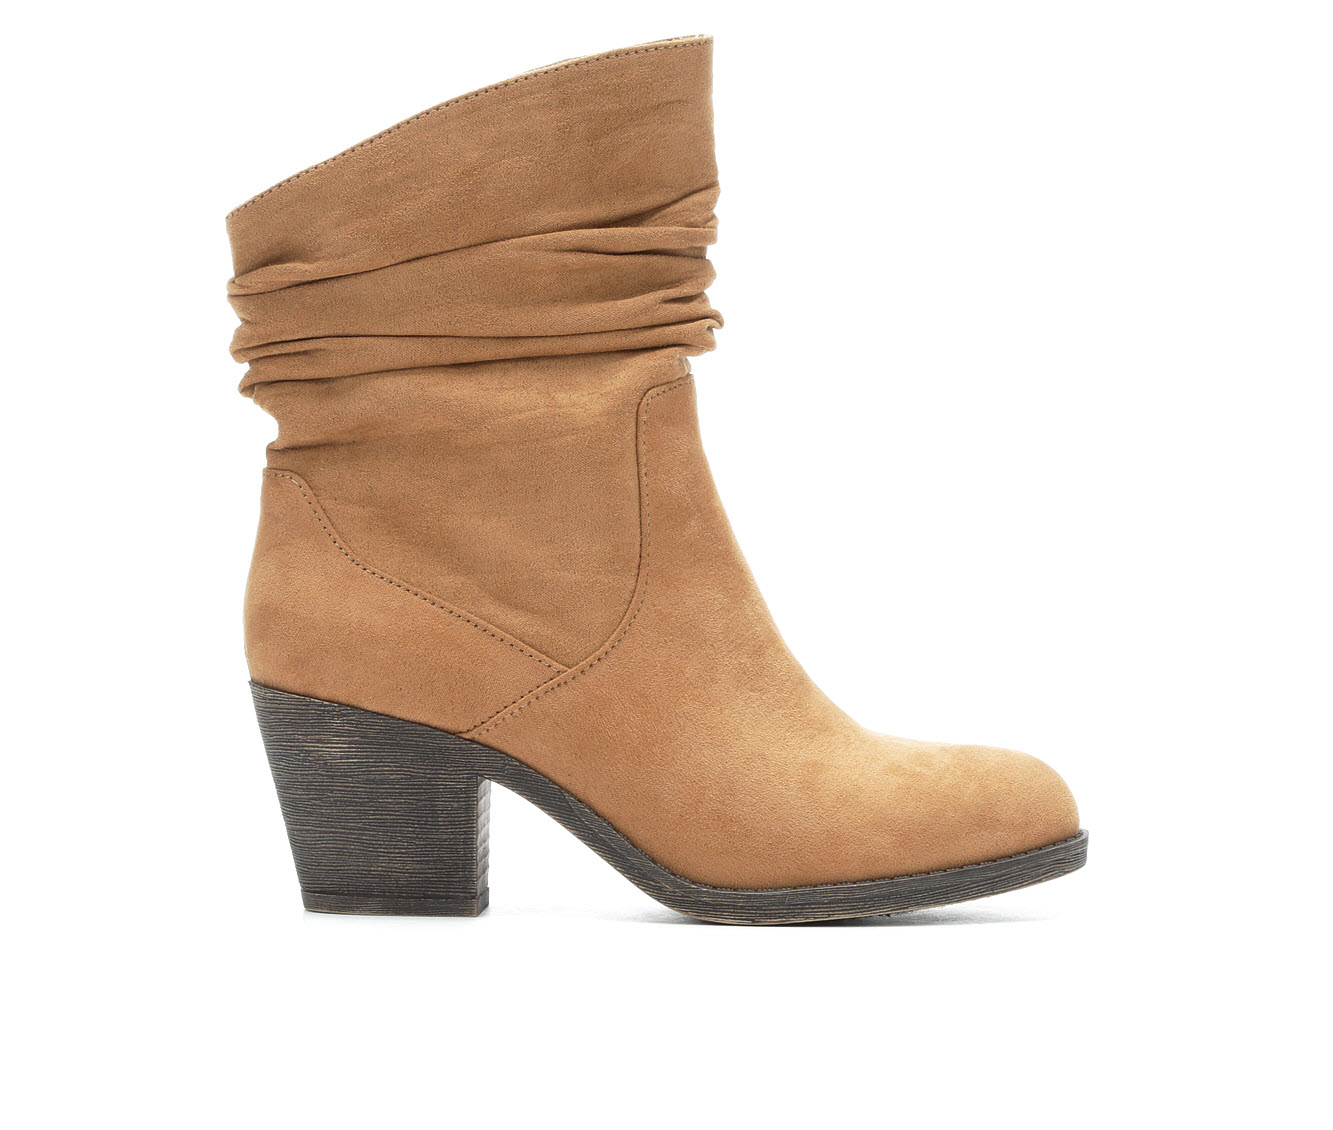 Rocket Dog Sassily Women's Boot (Beige Faux Leather)